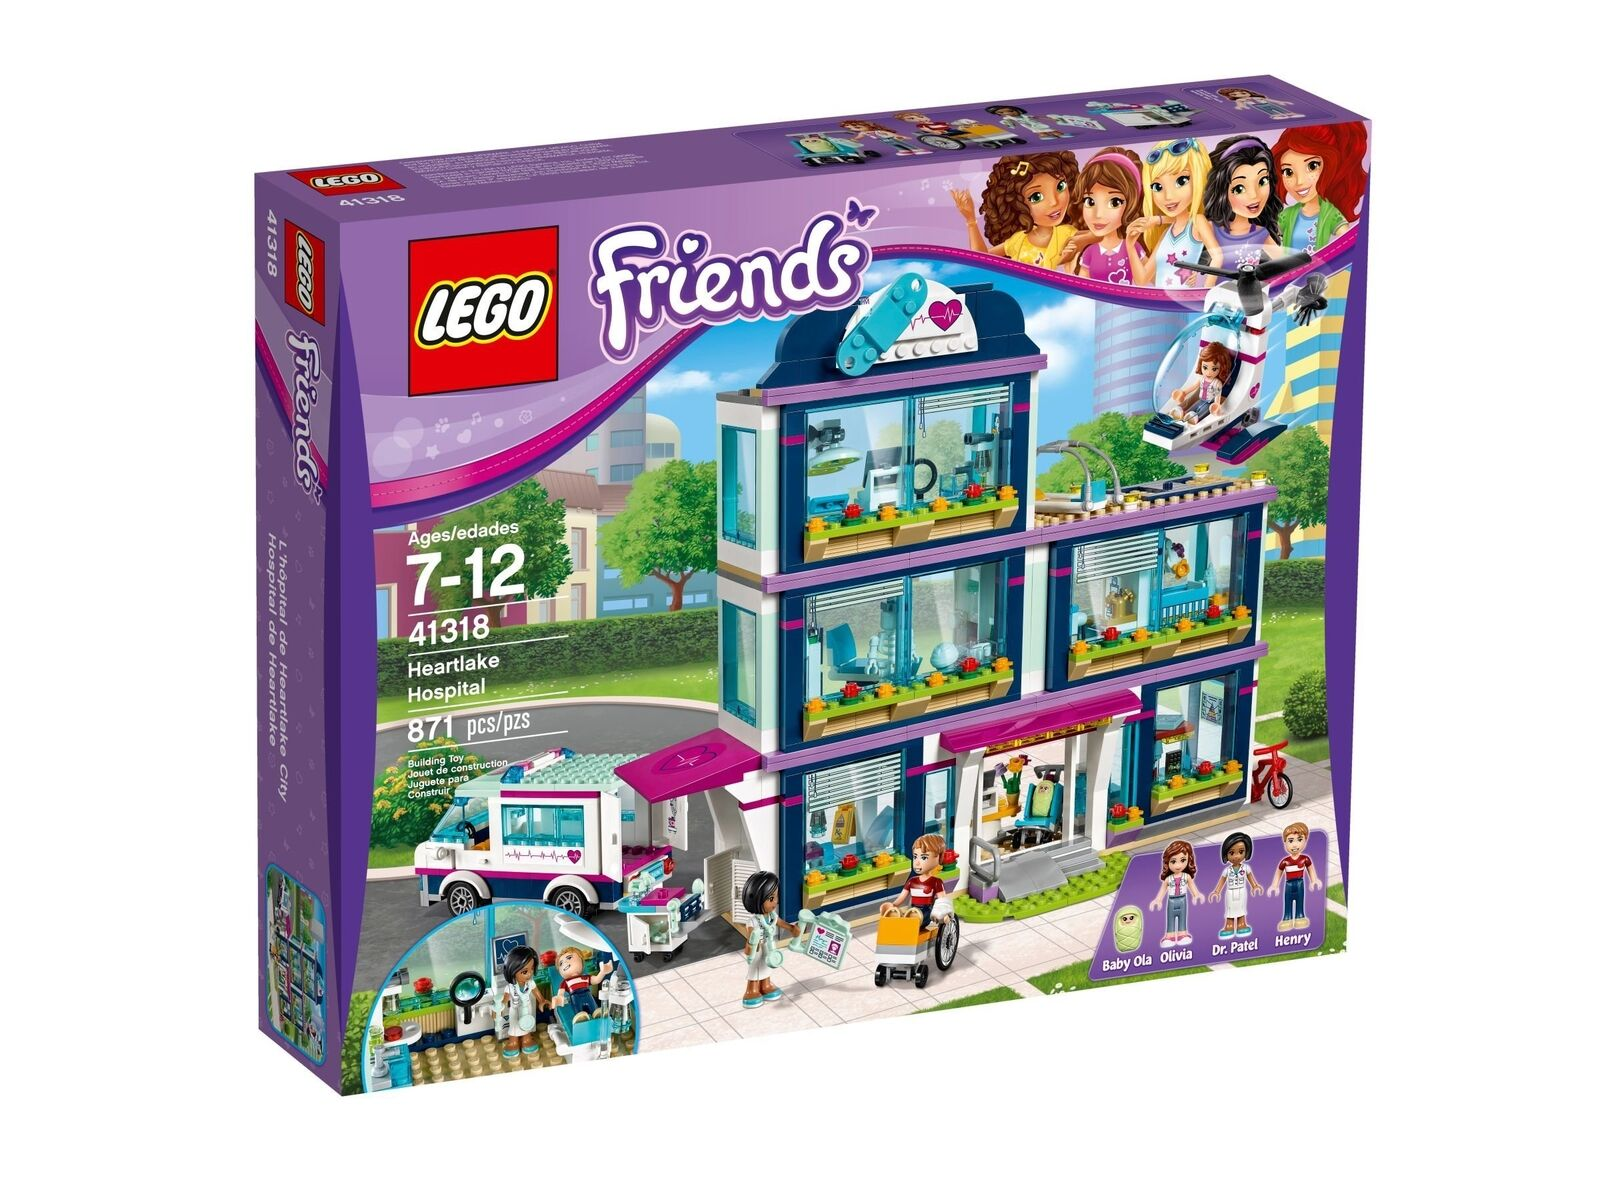 LEGO ® Friends 41318 Heartlake ospedale Nuovo Nuovo OVP MISB